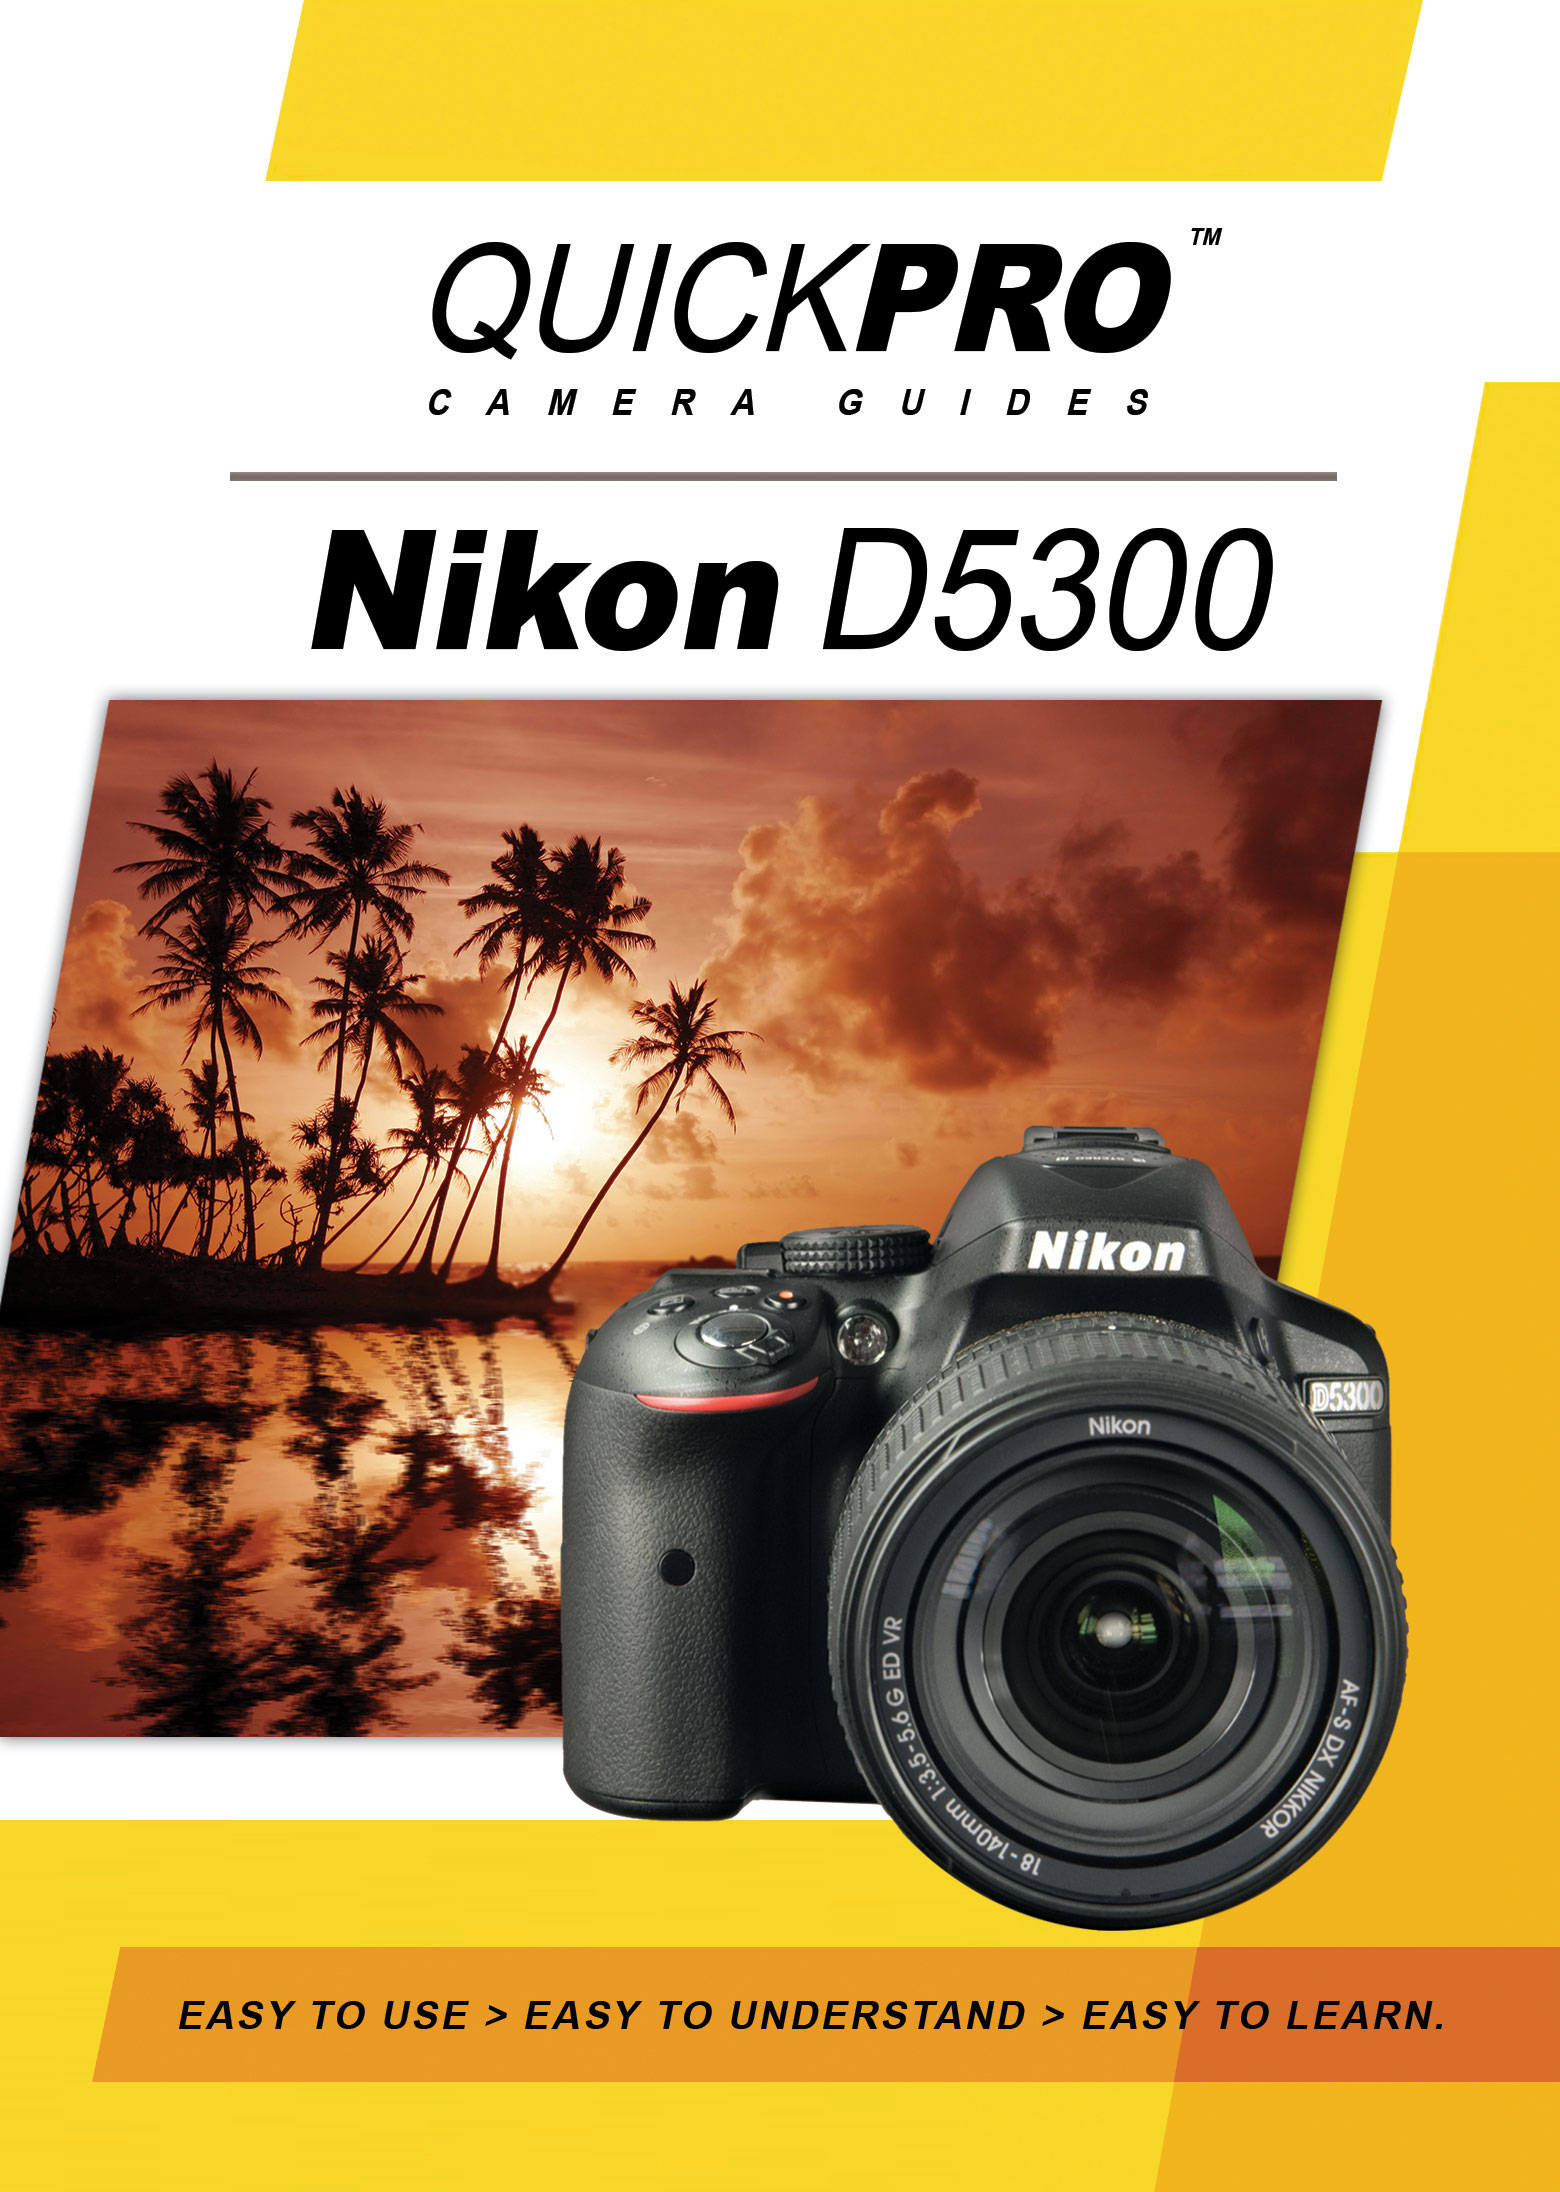 Nikon D5300 Instructional Camera Guide By QuickPro